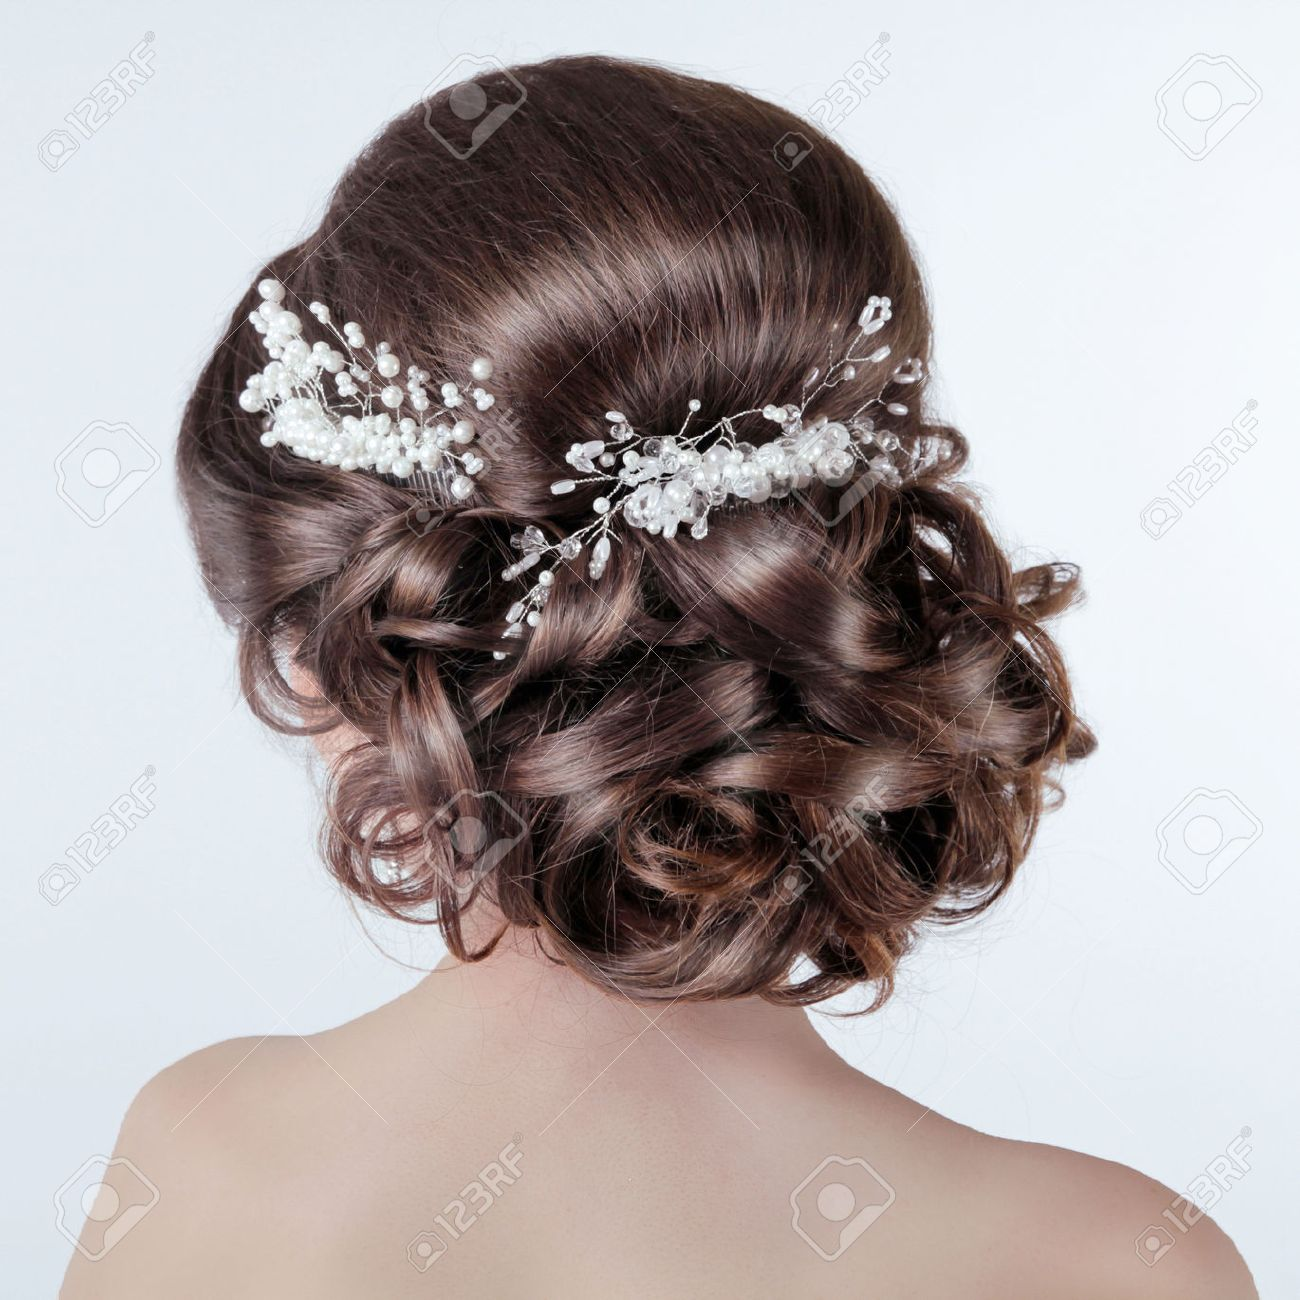 brown hair styling. brunette girl with curly hairstyle with